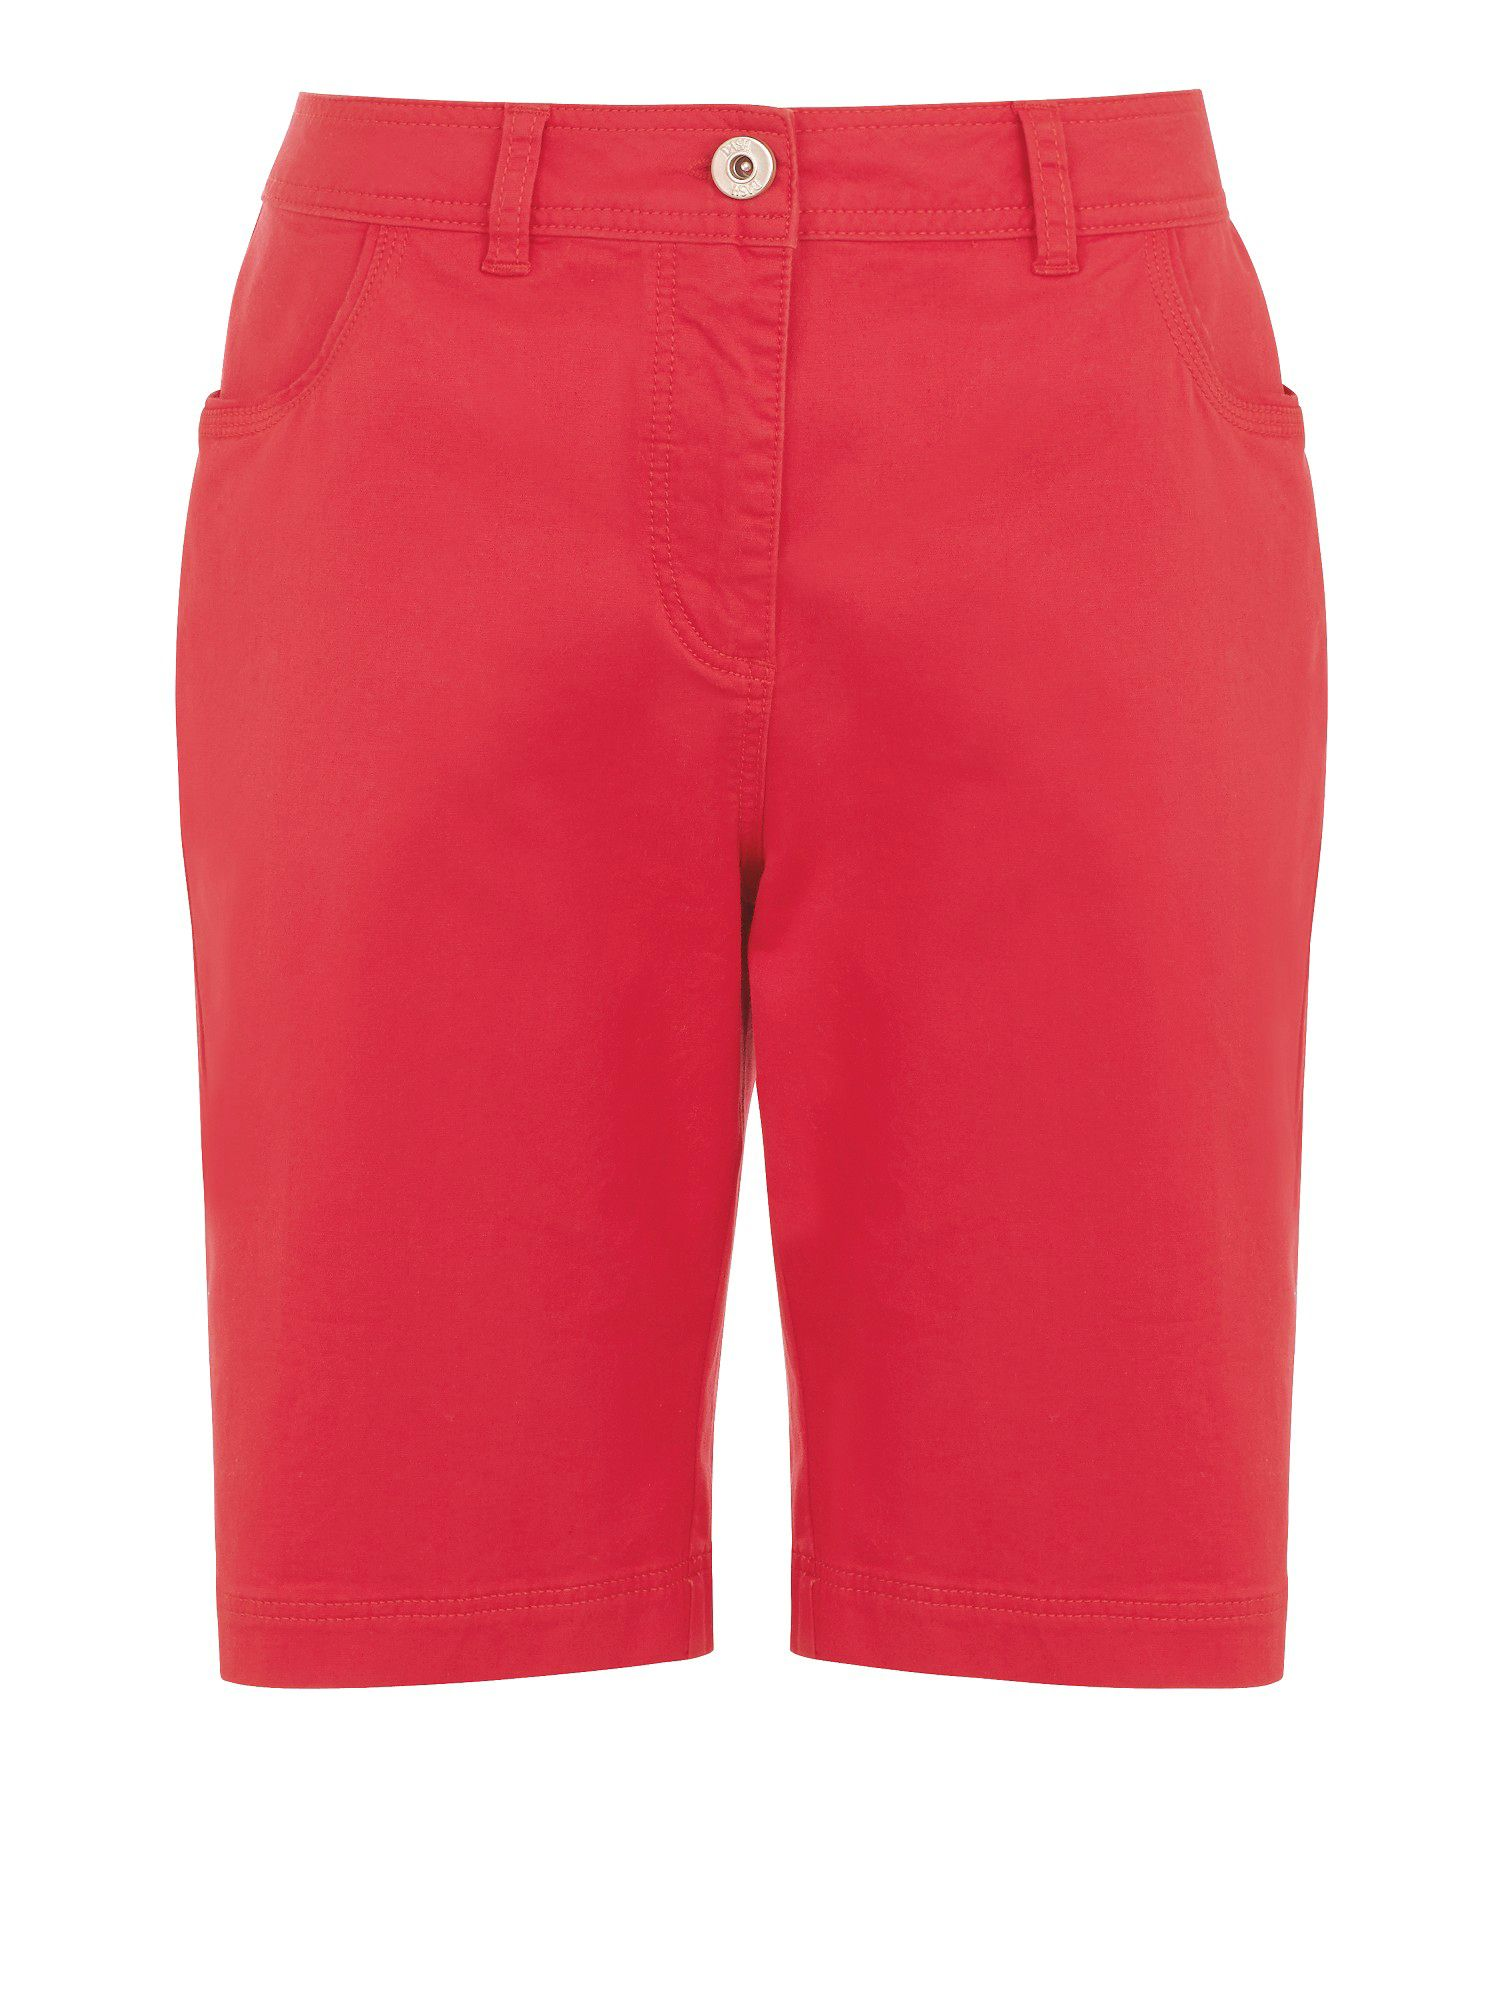 Pink cotton twill city short